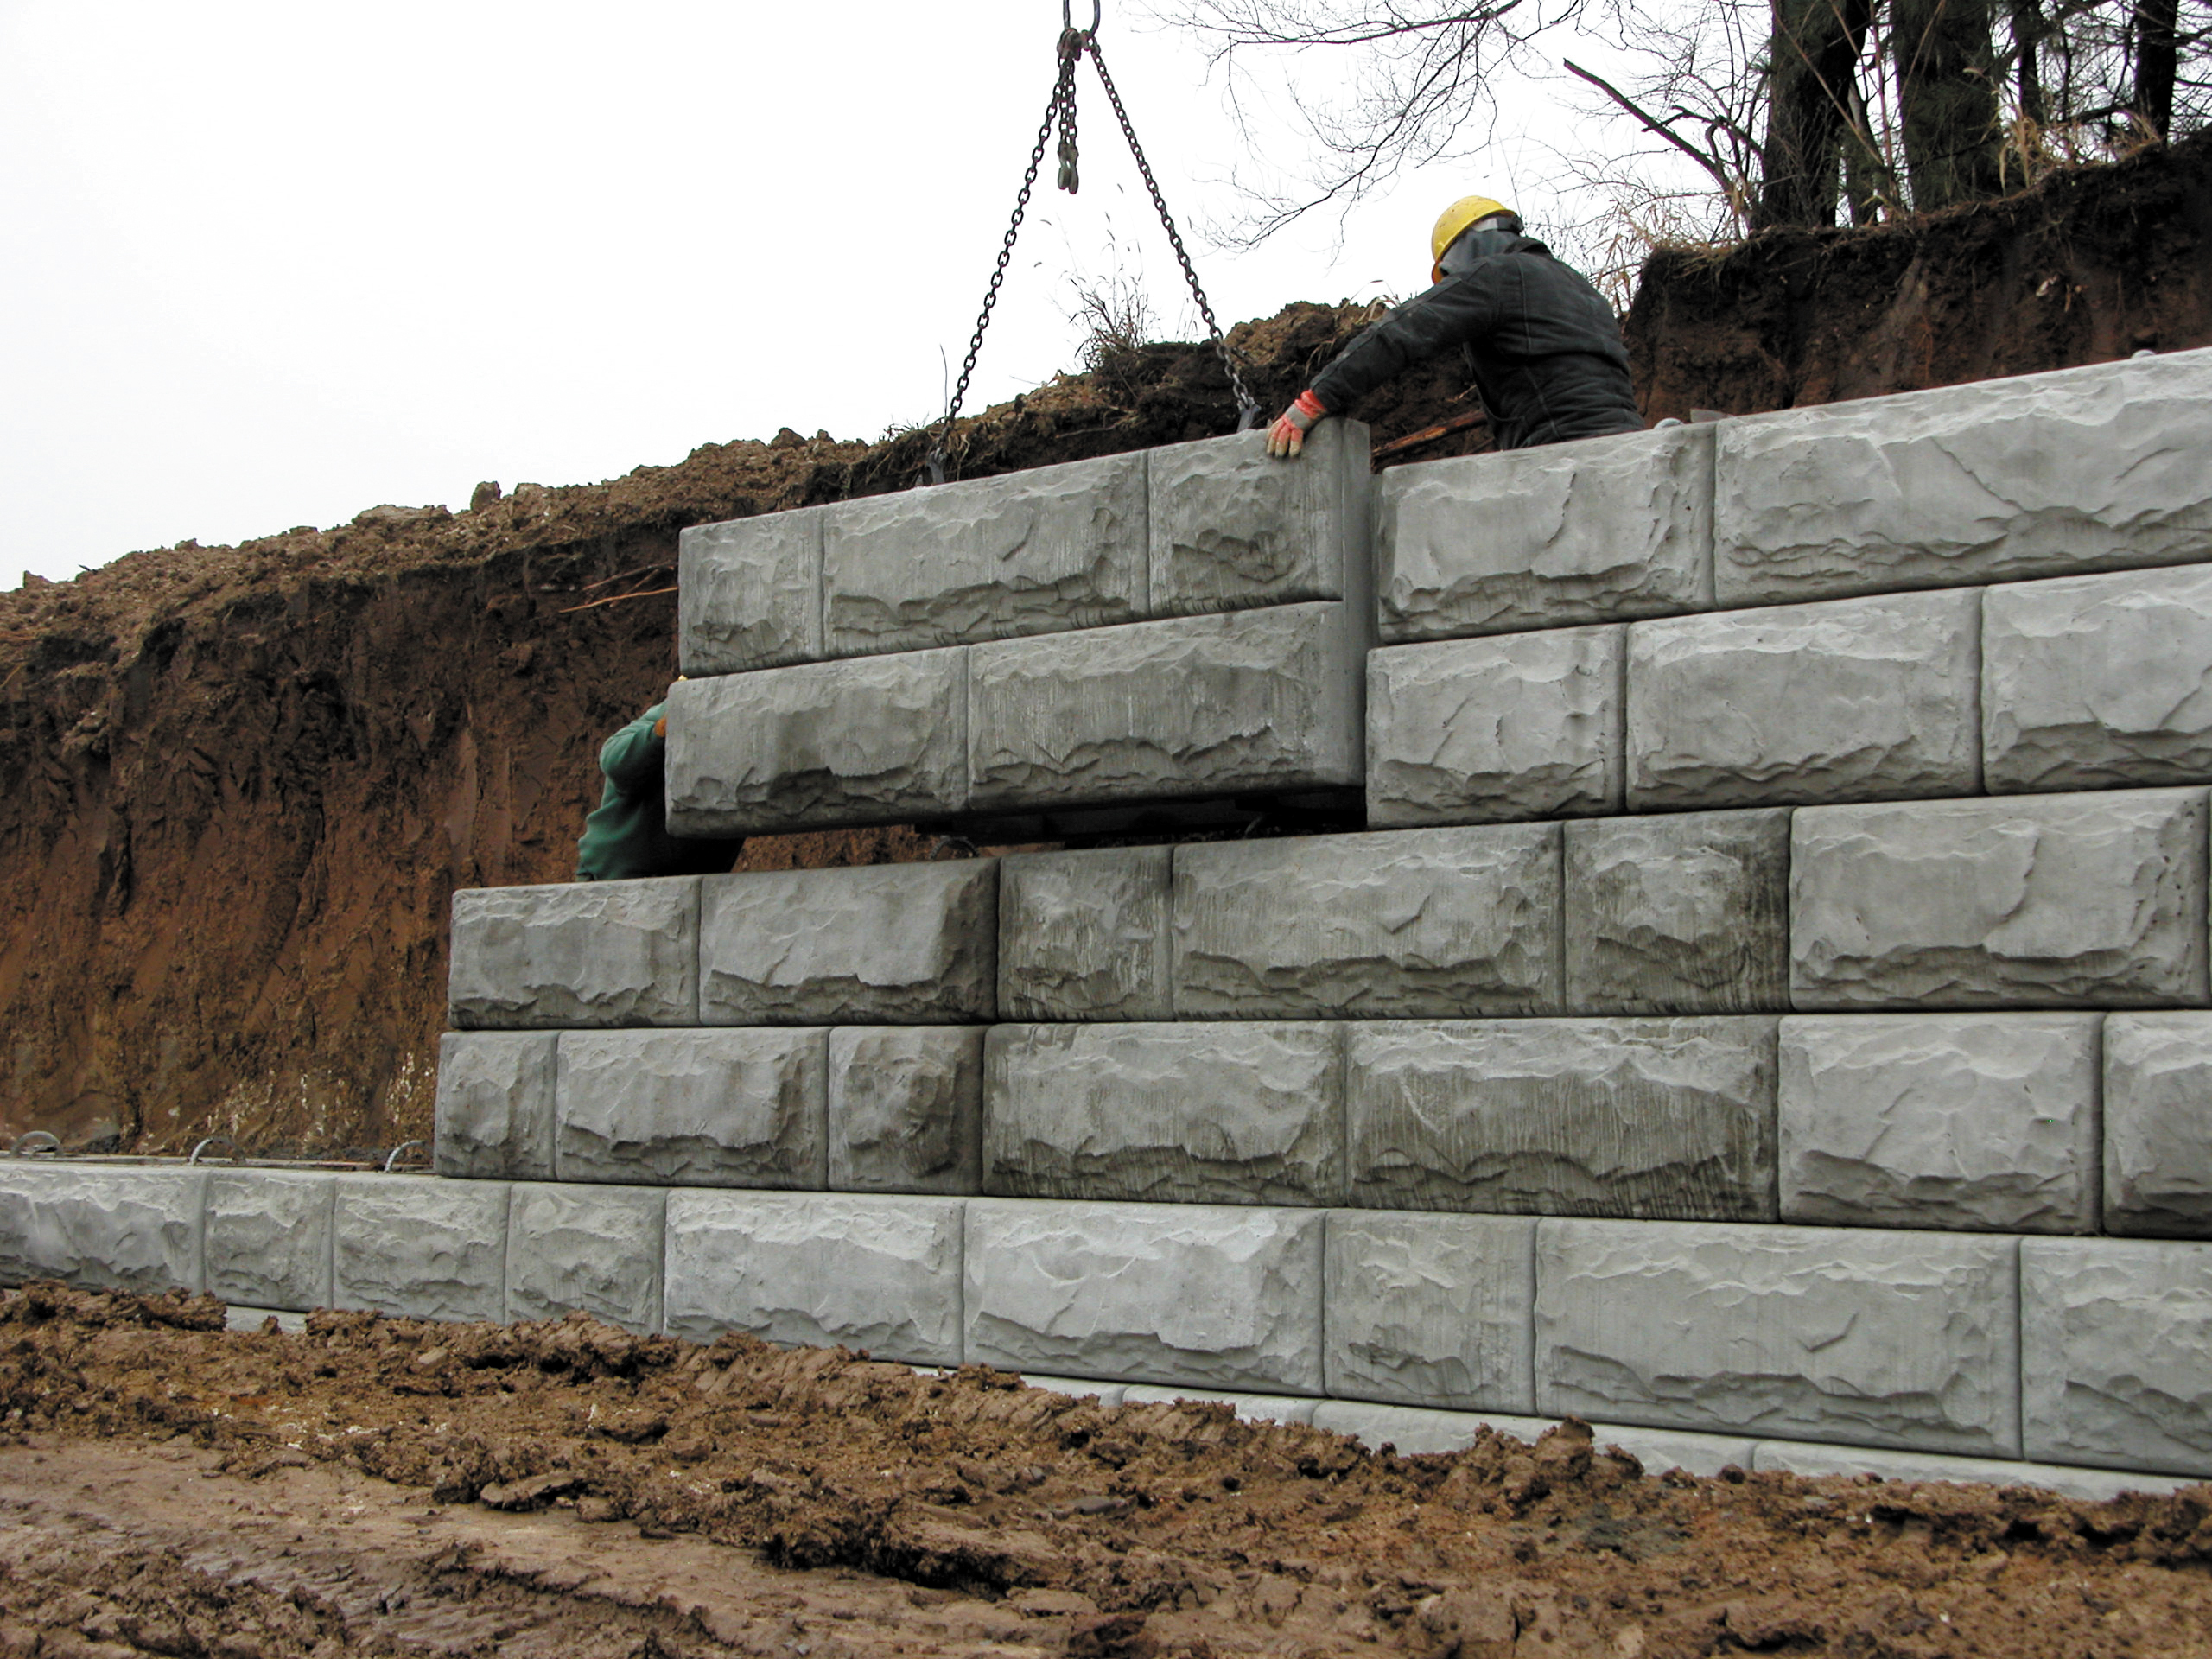 Prefabricated Prefab Concrete Walls : Retaining walls national precast concrete association